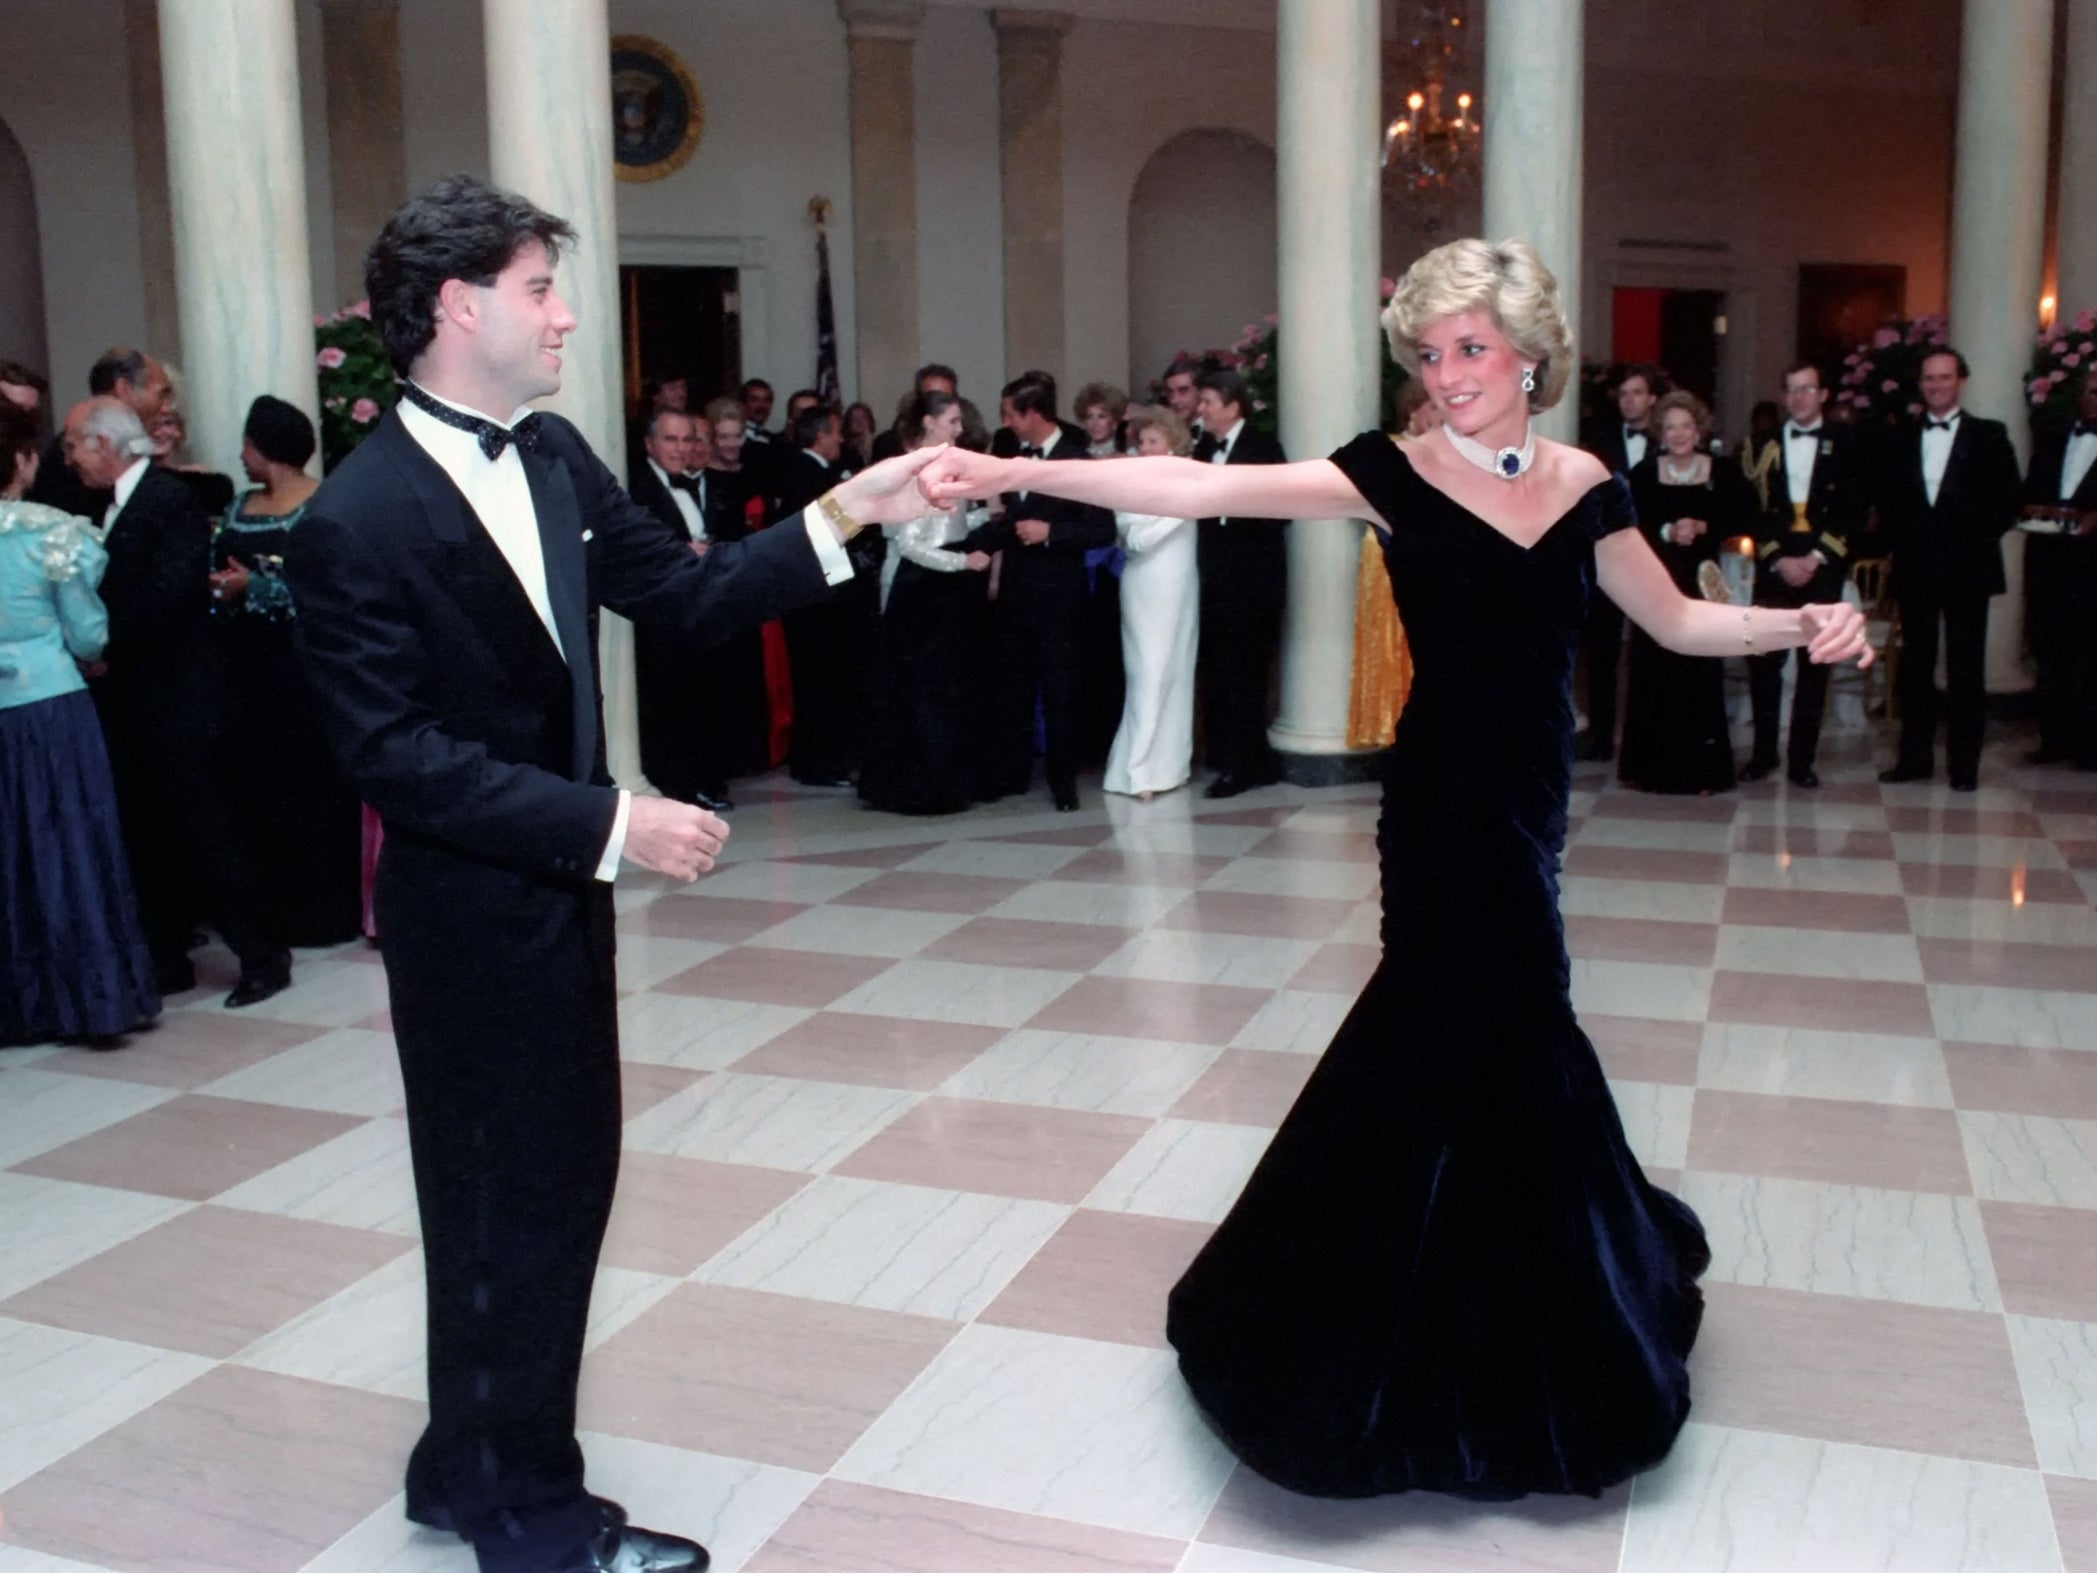 Princess Diana's 'Travolta gown' sells at auction for £264,000